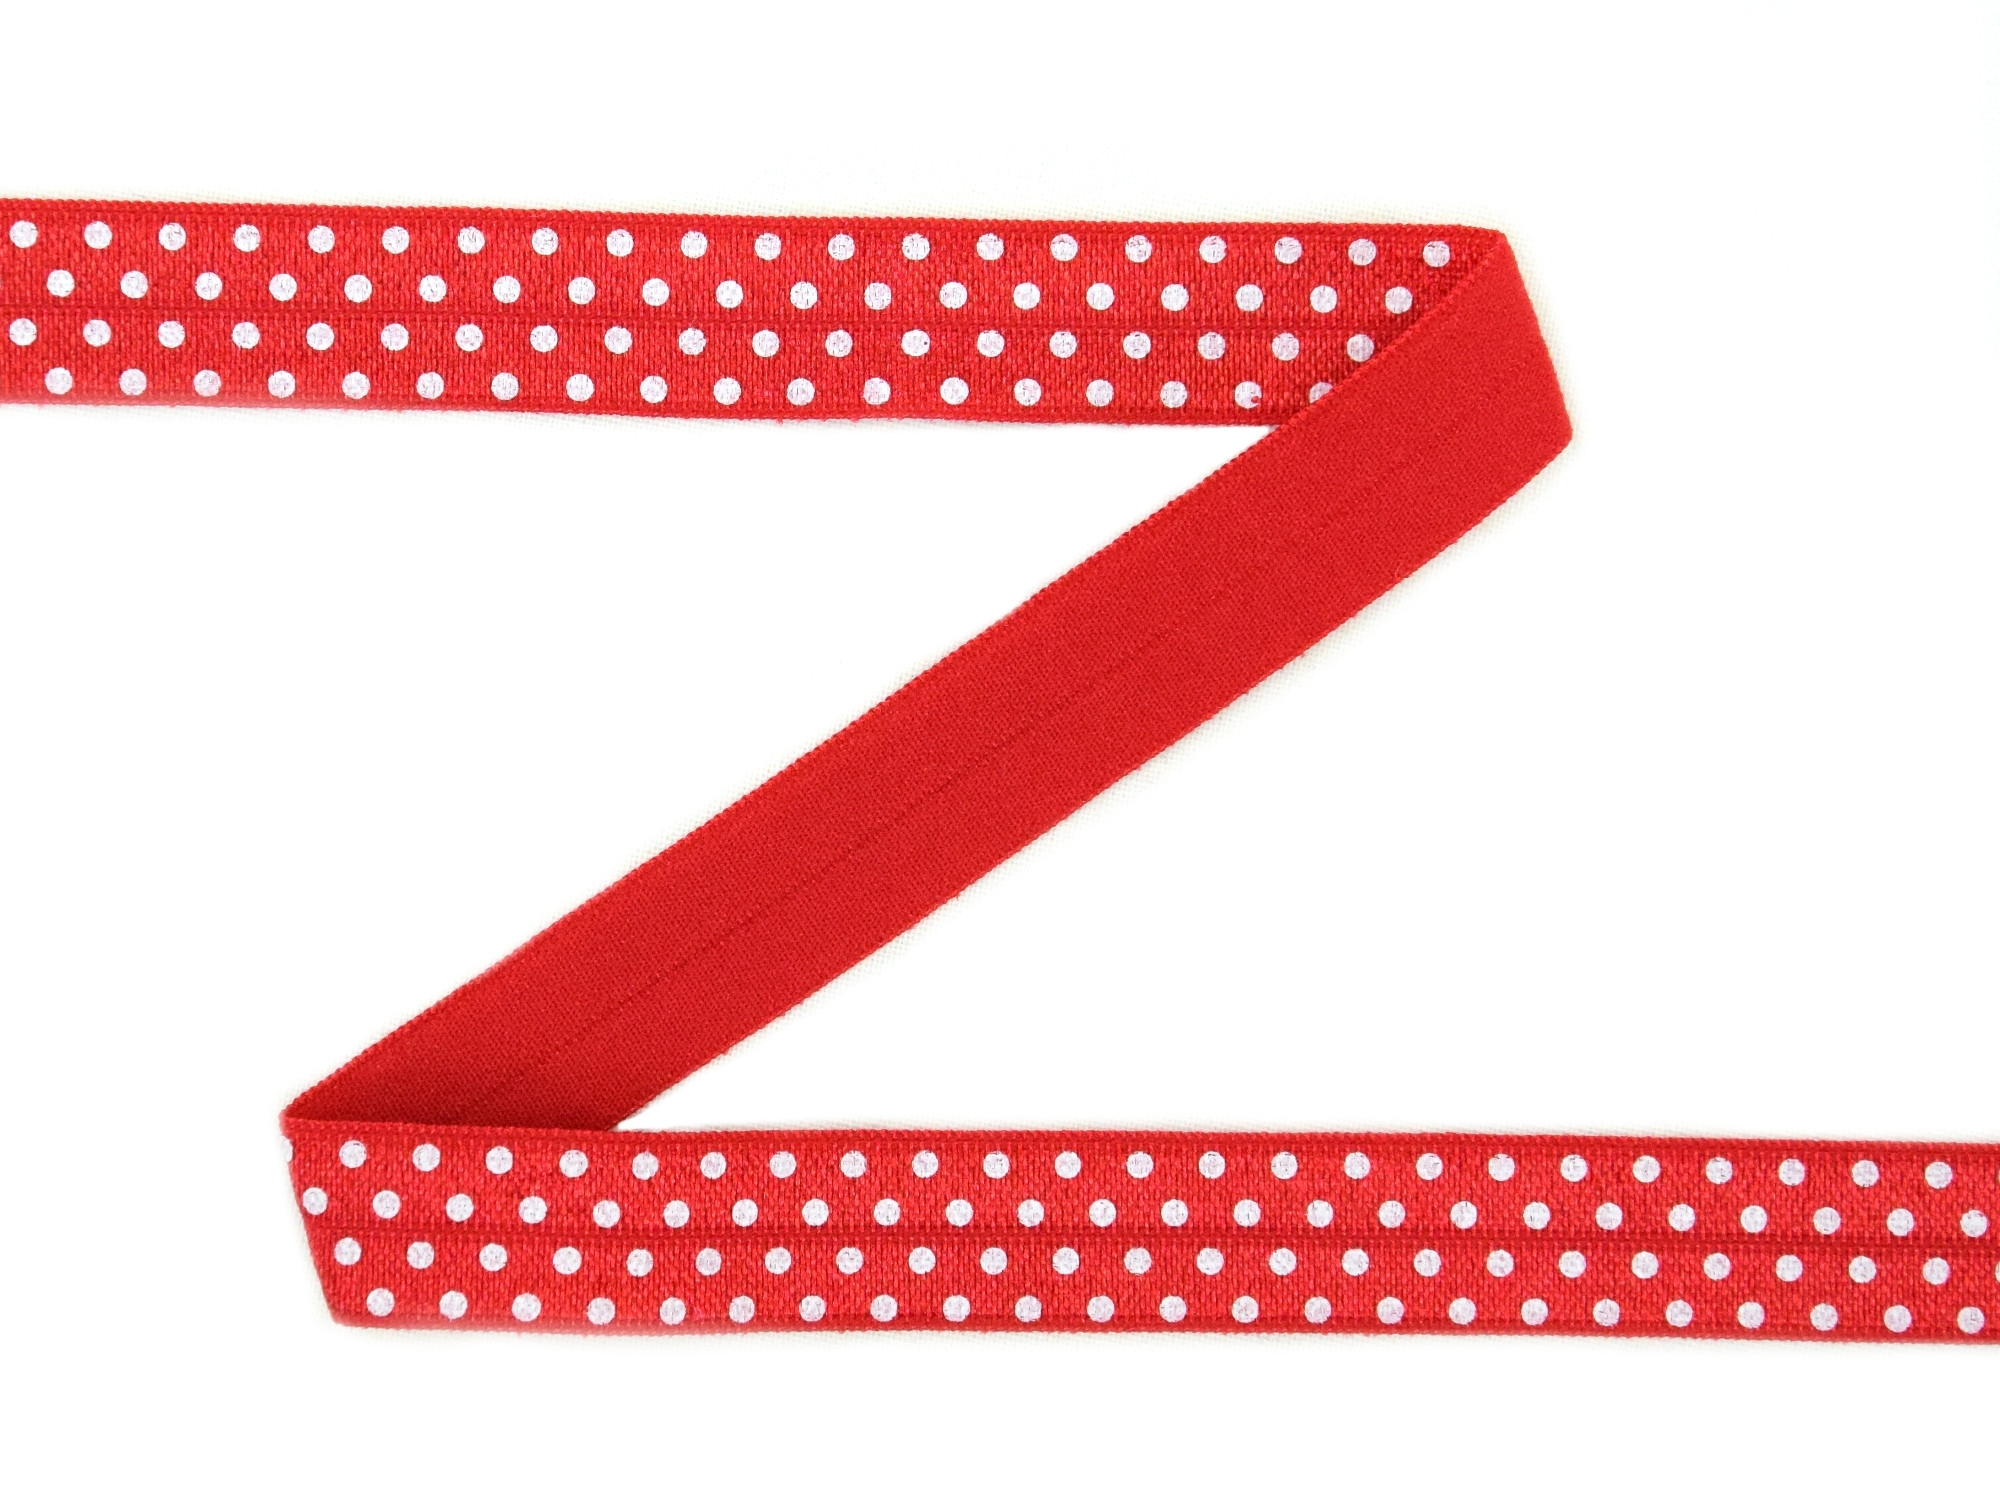 Elastic Binding Ribbon with dots, red 15 mm | 30203 | rot